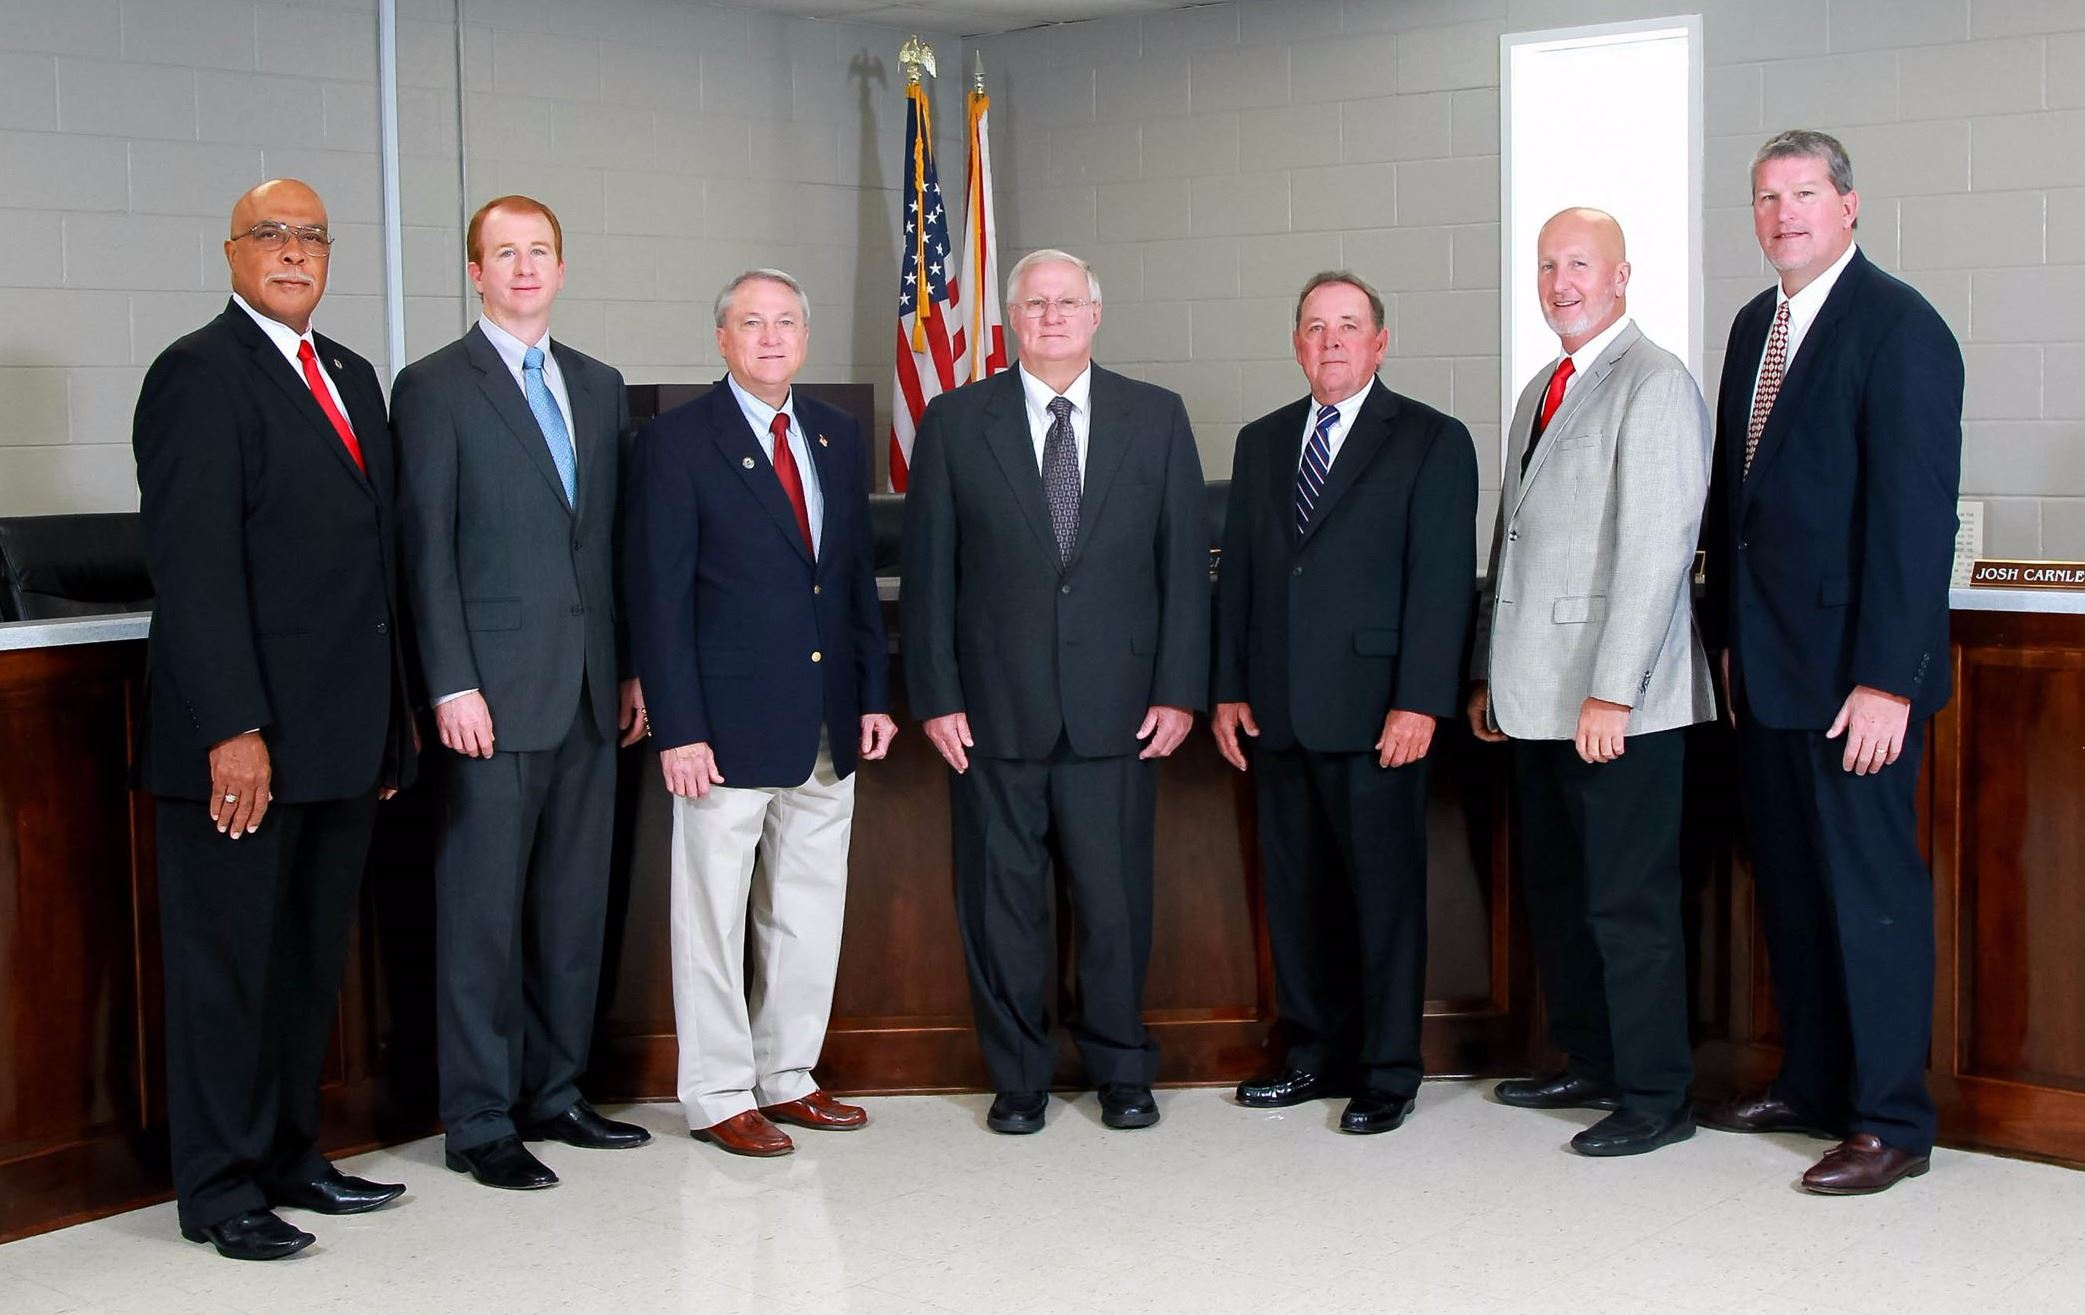 left to right: Jimmy Jones, Josh Carnley, Tom Grimsley, Dean Smith, Al Britt, Kim Ellis, Jim Thompson